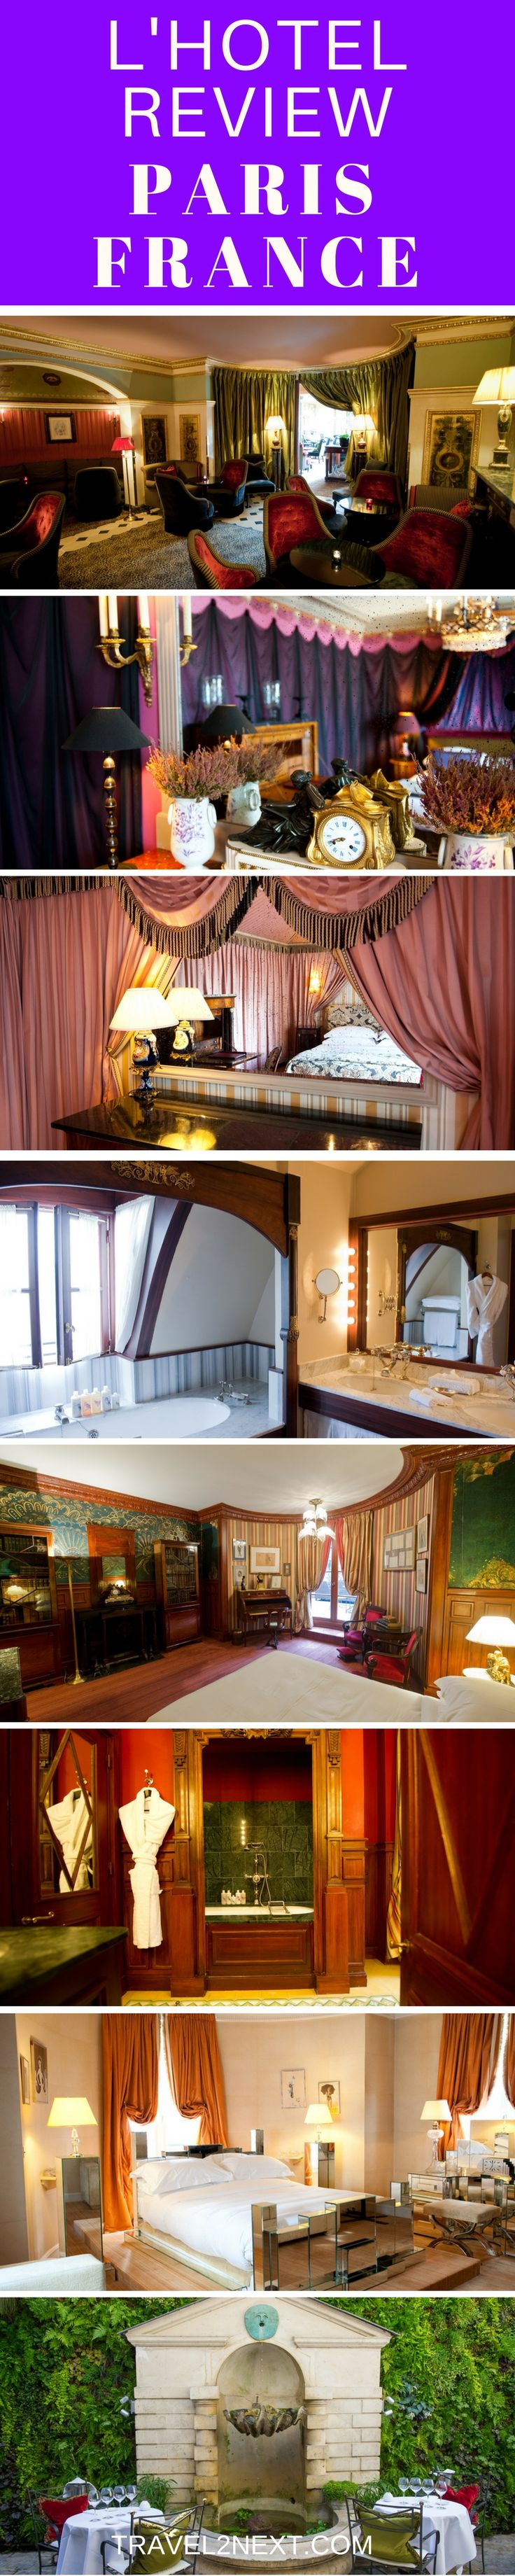 L'Hotel Paris in France is a luxury hotel where Oscar Wilde once slept.